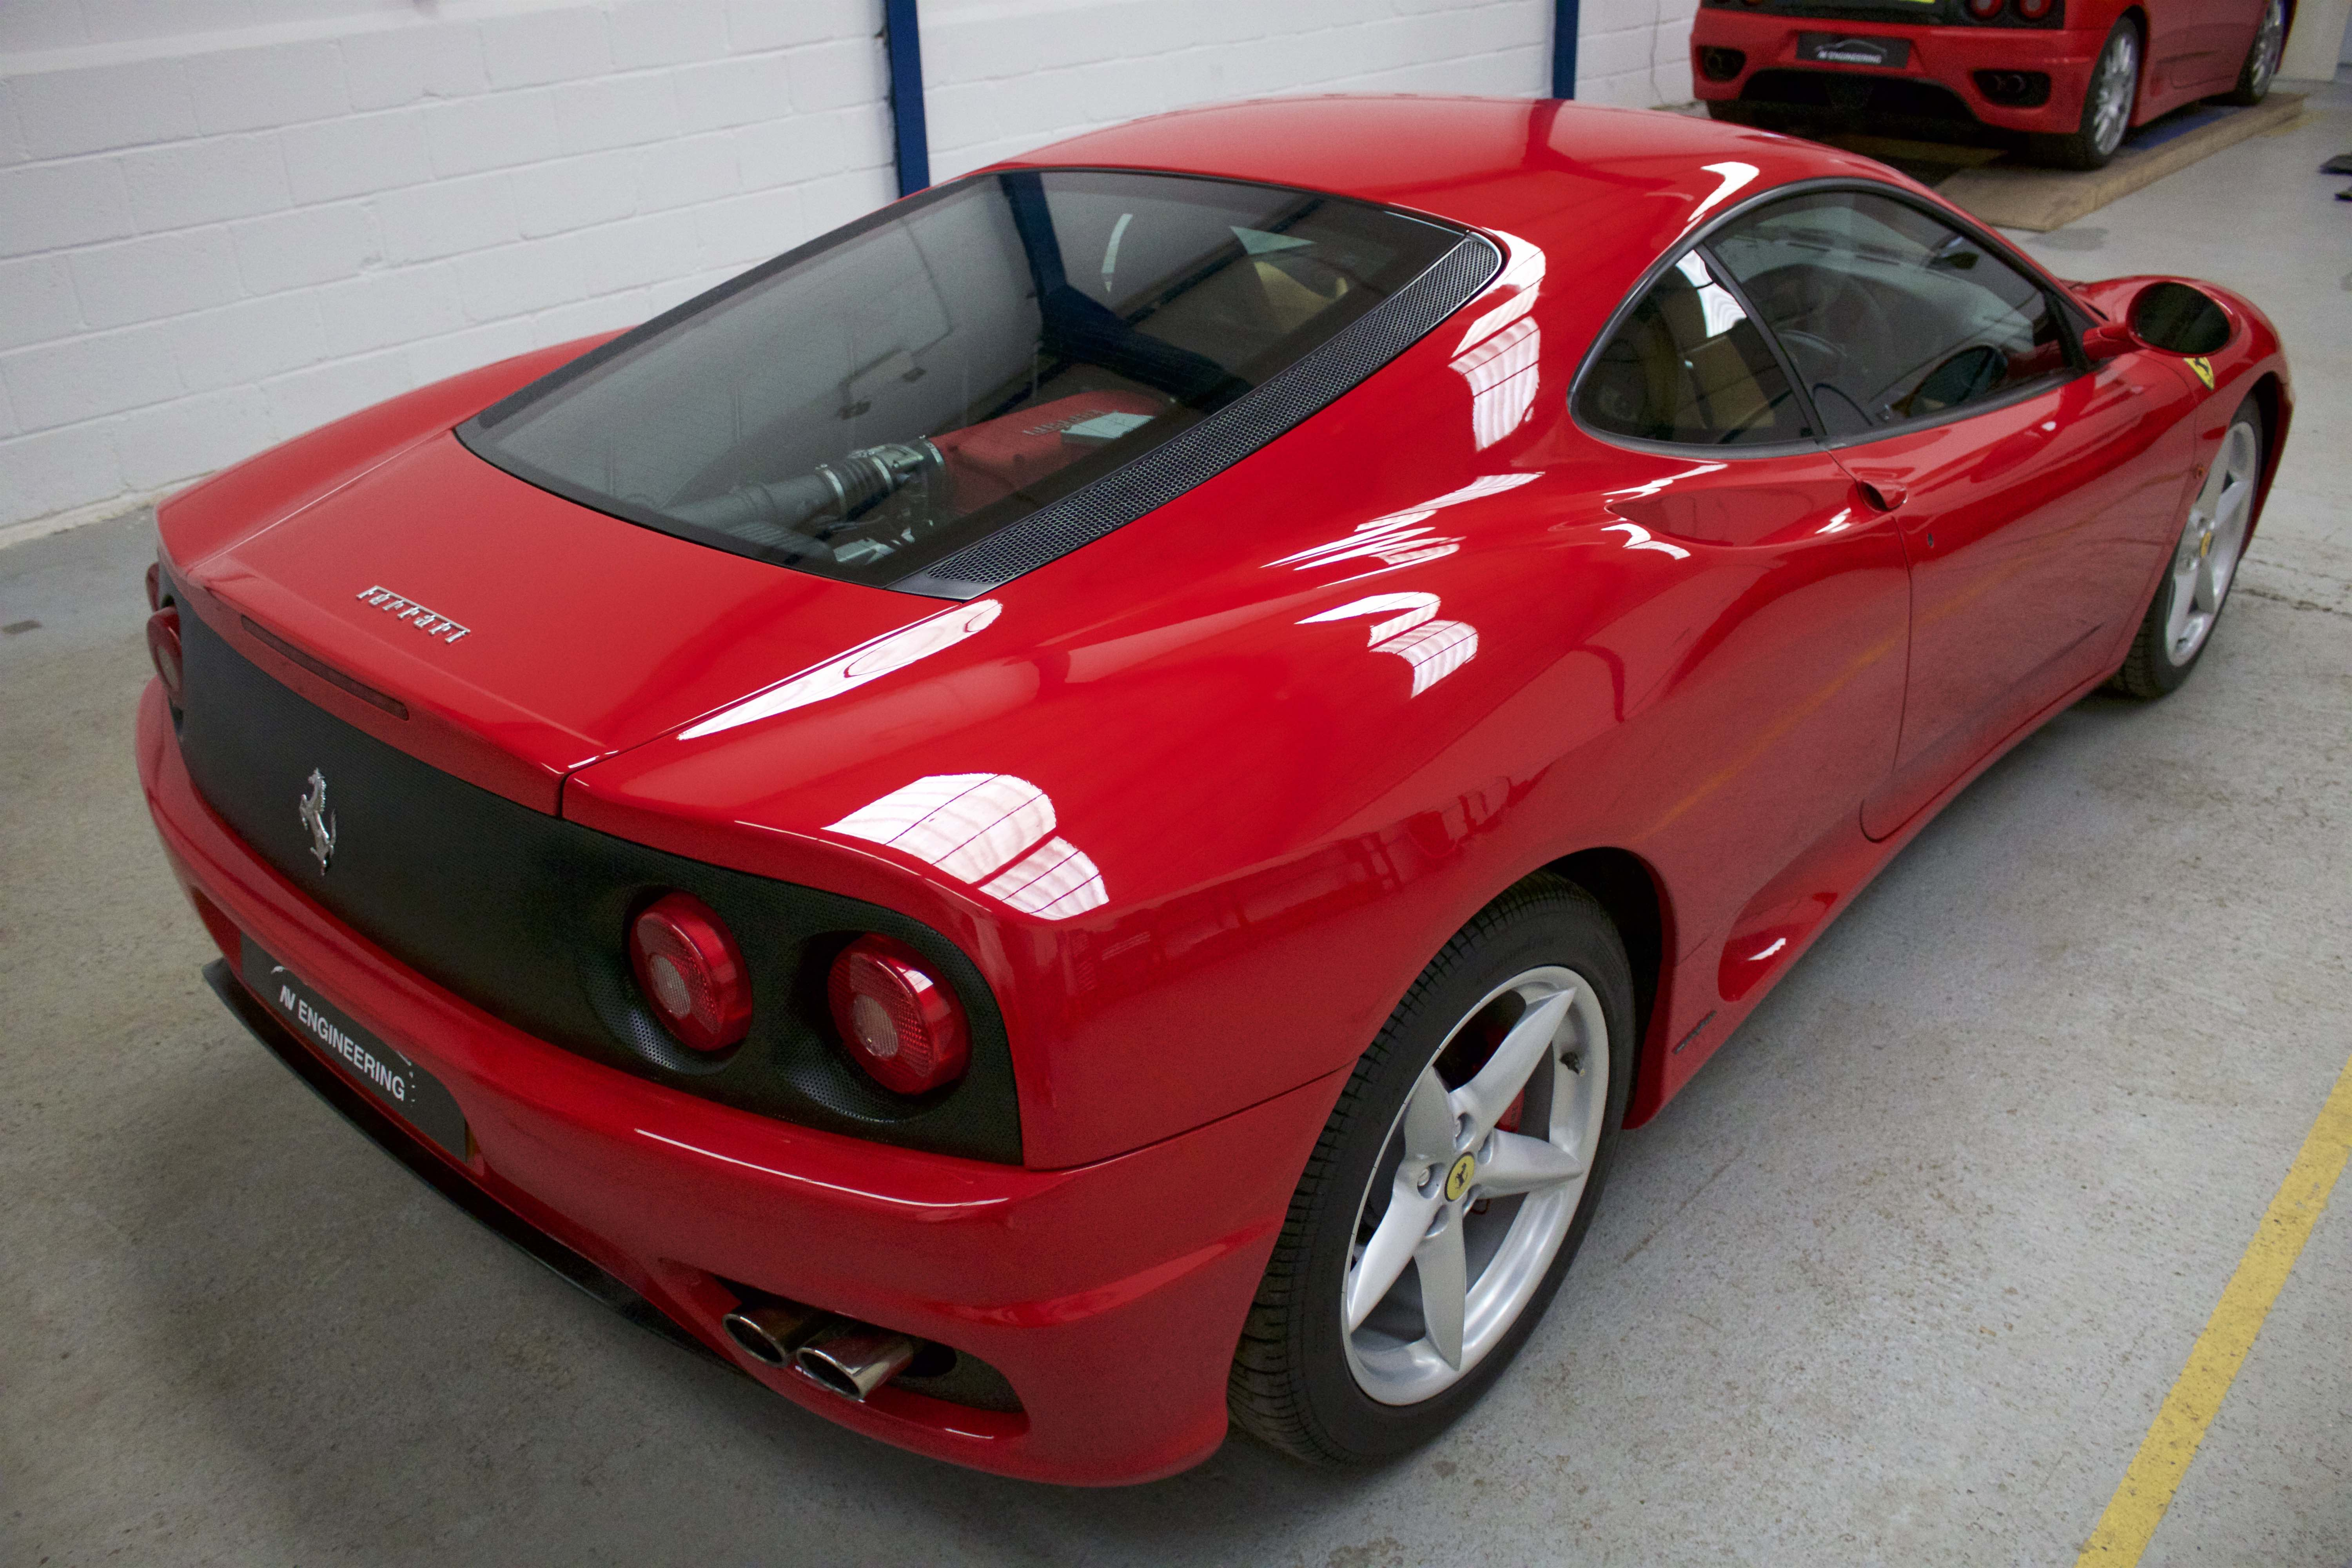 Ferrari 360 Modena Coupe | AV Engineering